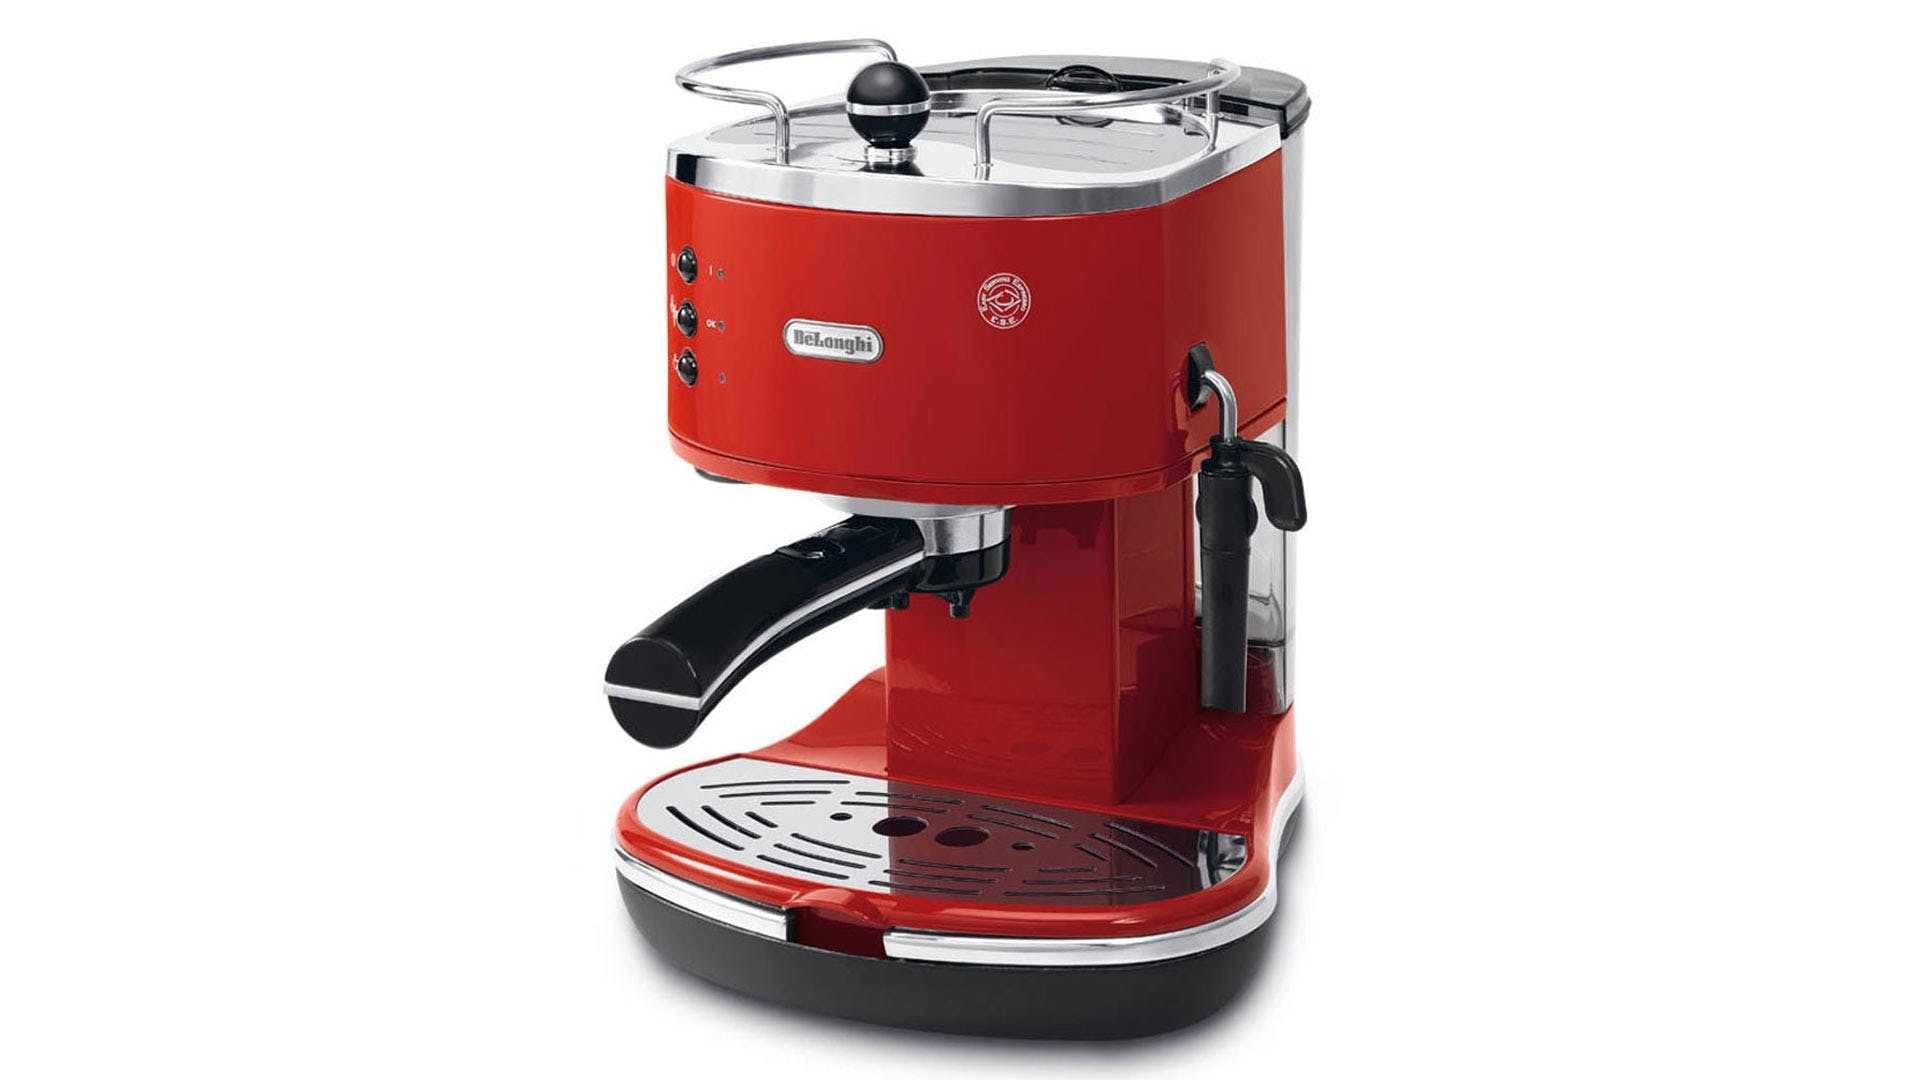 delonghi icona pump espresso machine red harvey norman singapore. Black Bedroom Furniture Sets. Home Design Ideas